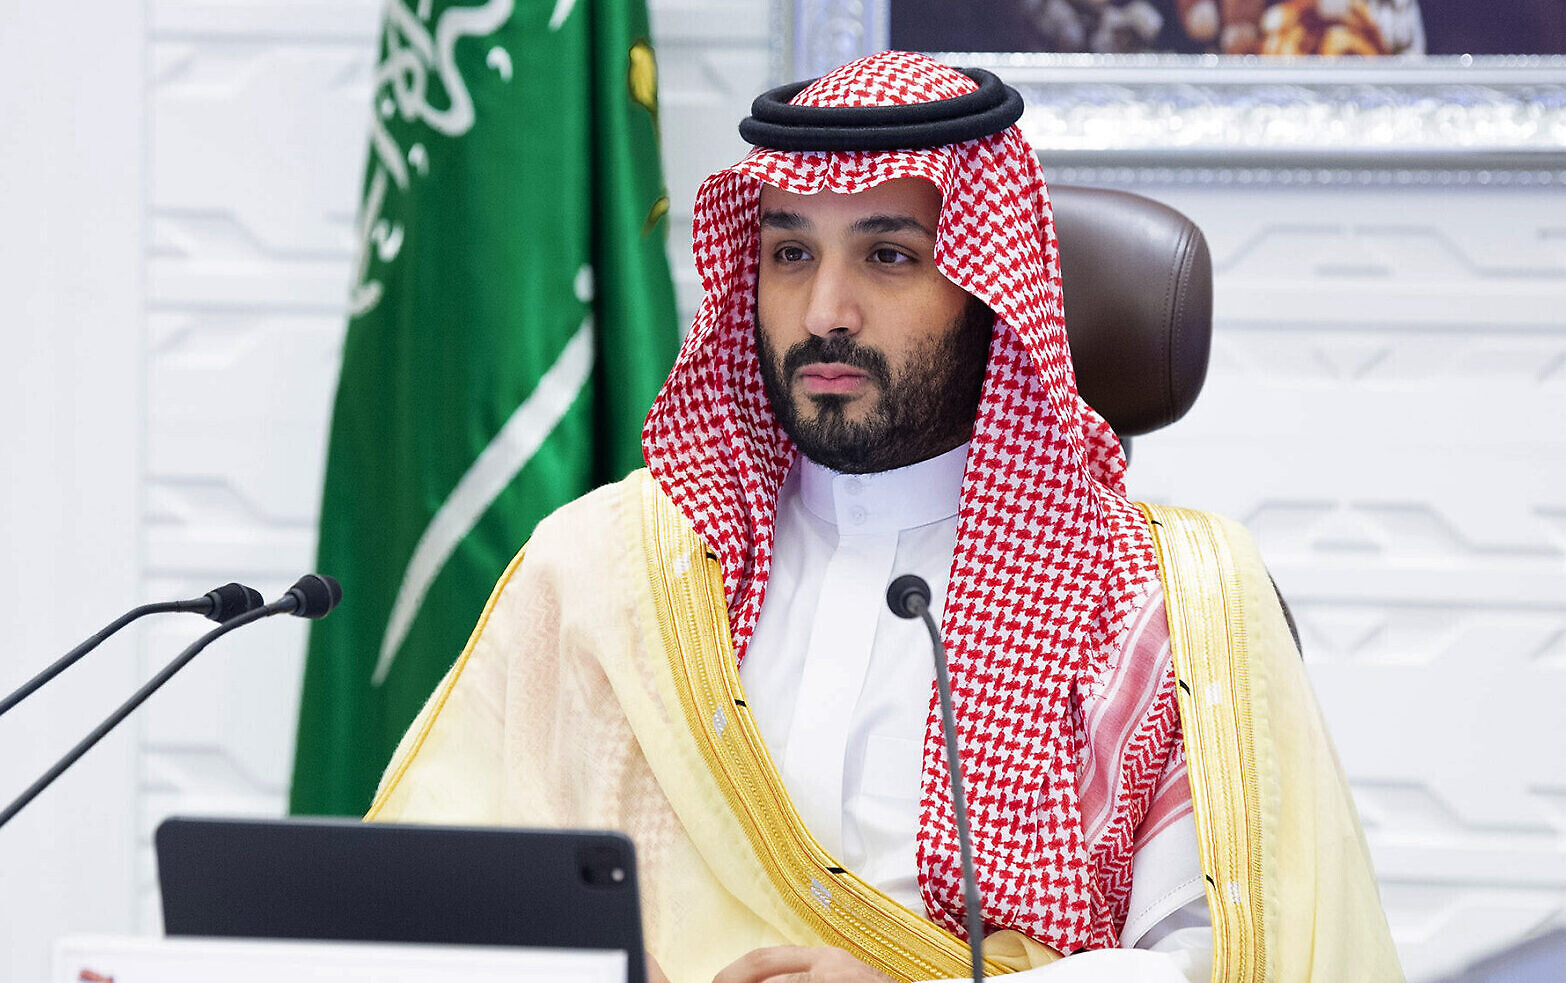 Saudi prince strikes conciliatory tone with rival Iran after secret talks   The Times of Israel